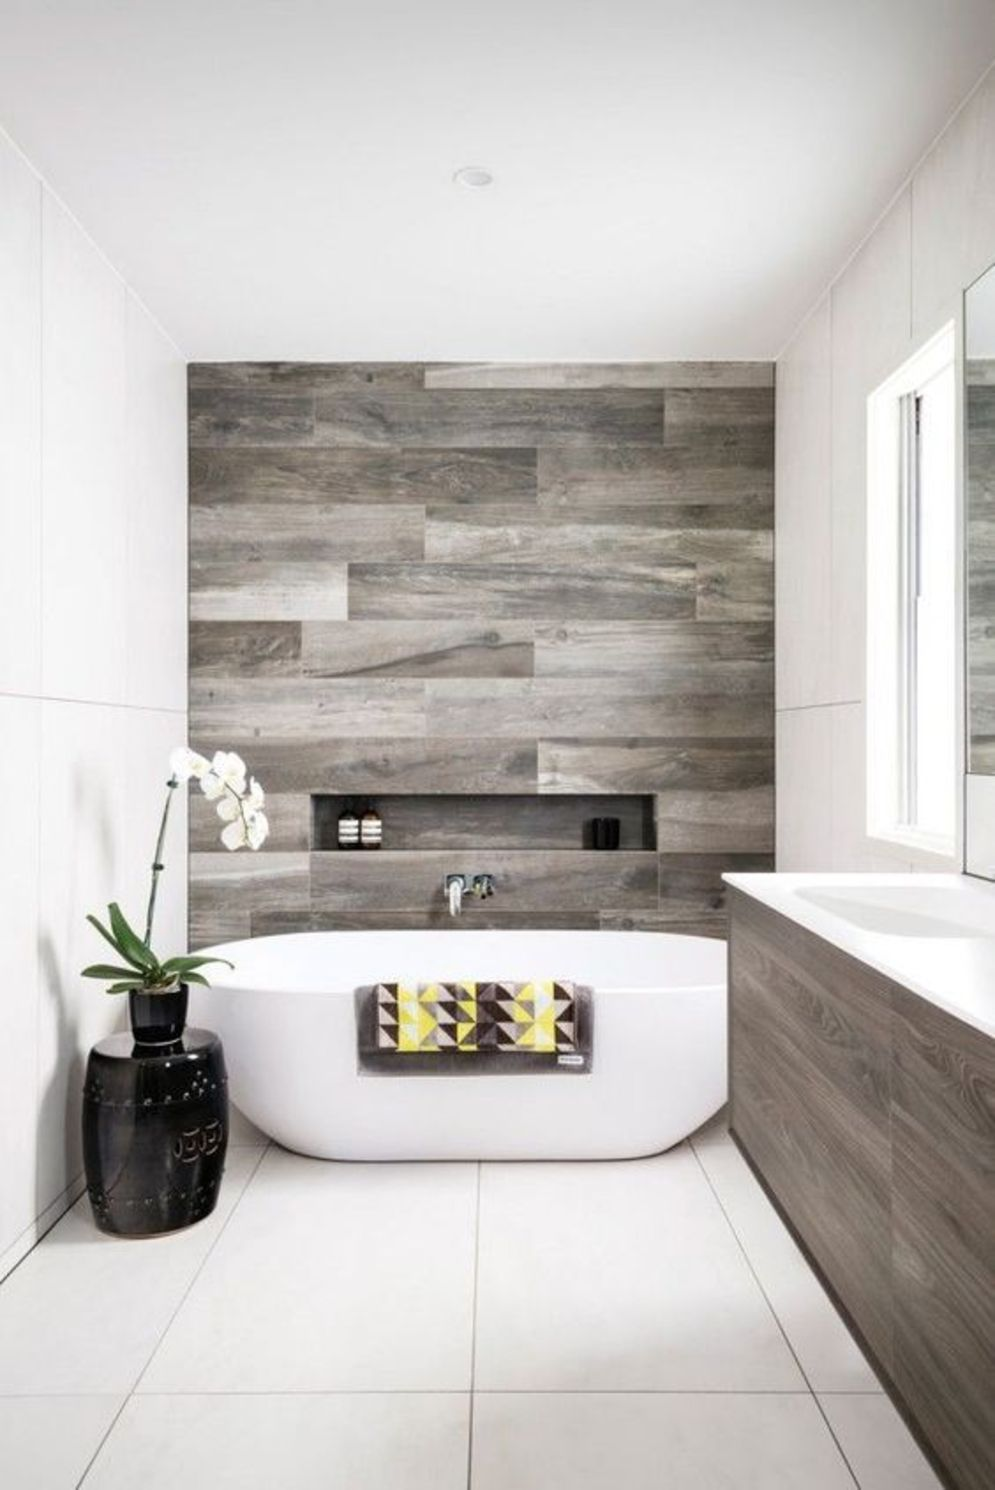 Timeless bathroom designs with wood accents enhancing more natural vibes Image 29